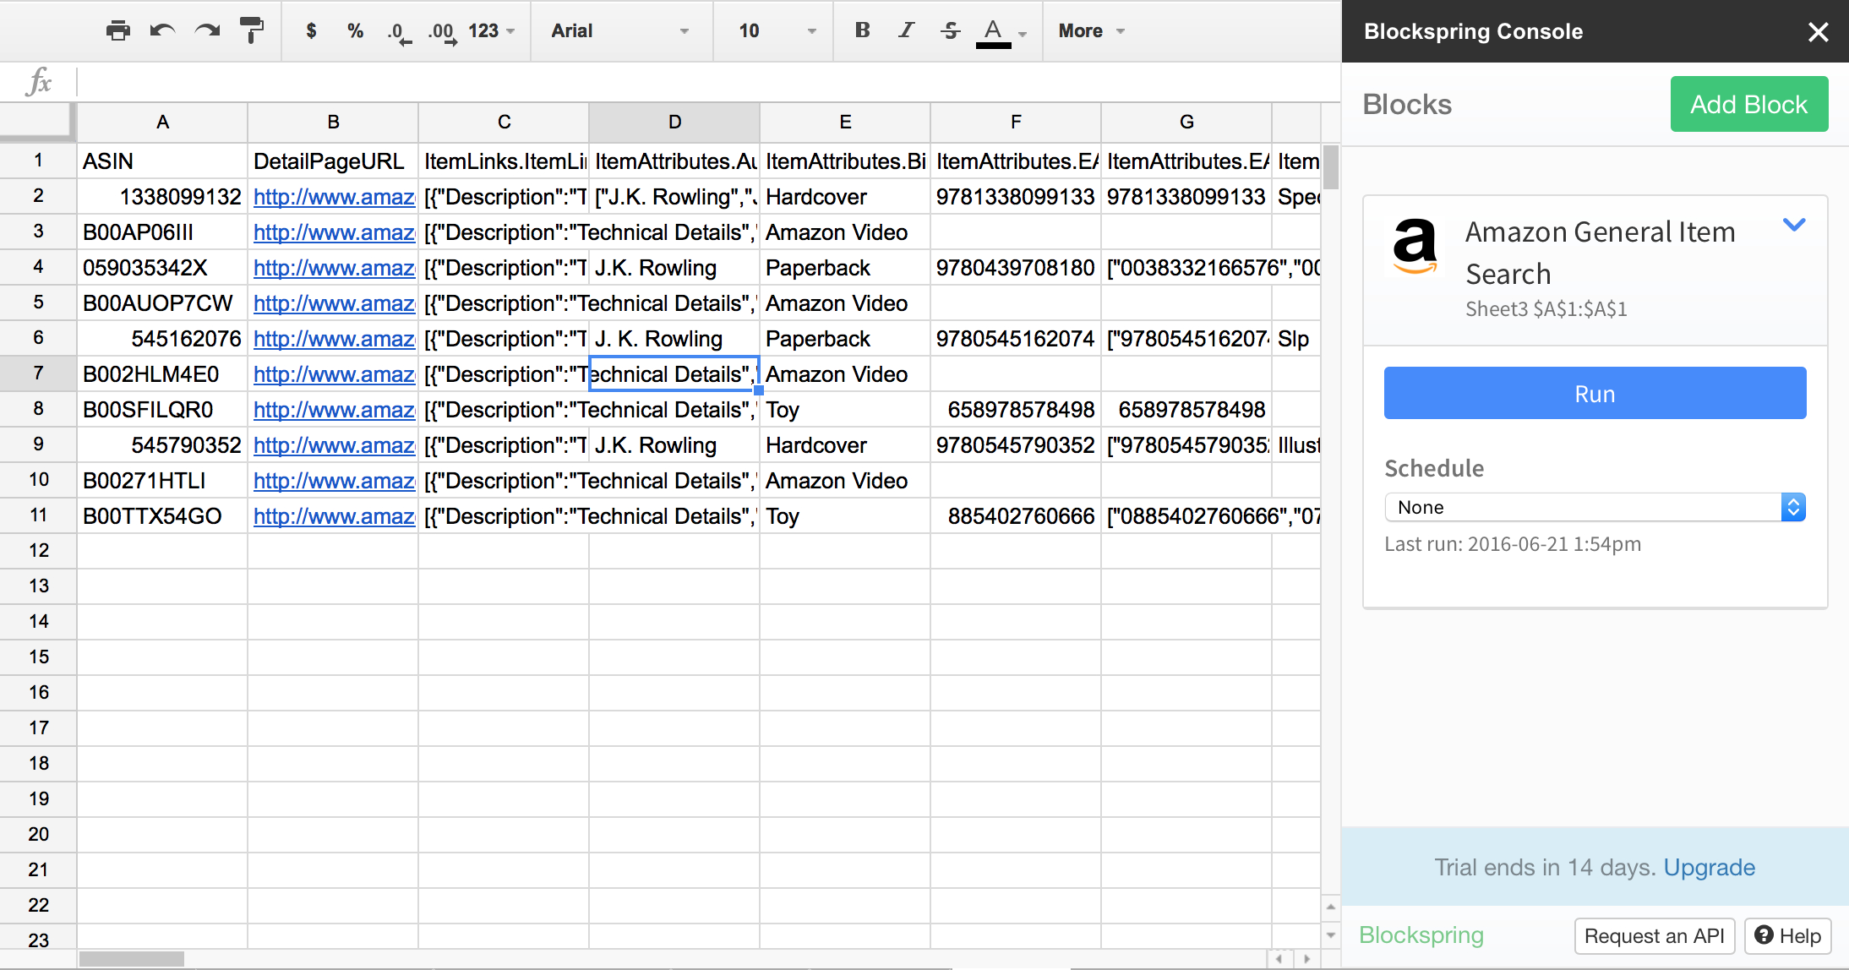 rory gilmore reading list spreadsheet reading list spreadsheet book list spreadsheet template book reading list spreadsheet book list spreadsheet  Reading List Spreadsheet Throughout 50 Google Sheets Addons To Supercharge Your Spreadsheets  The Reading List Spreadsheet Printable Spreadshee